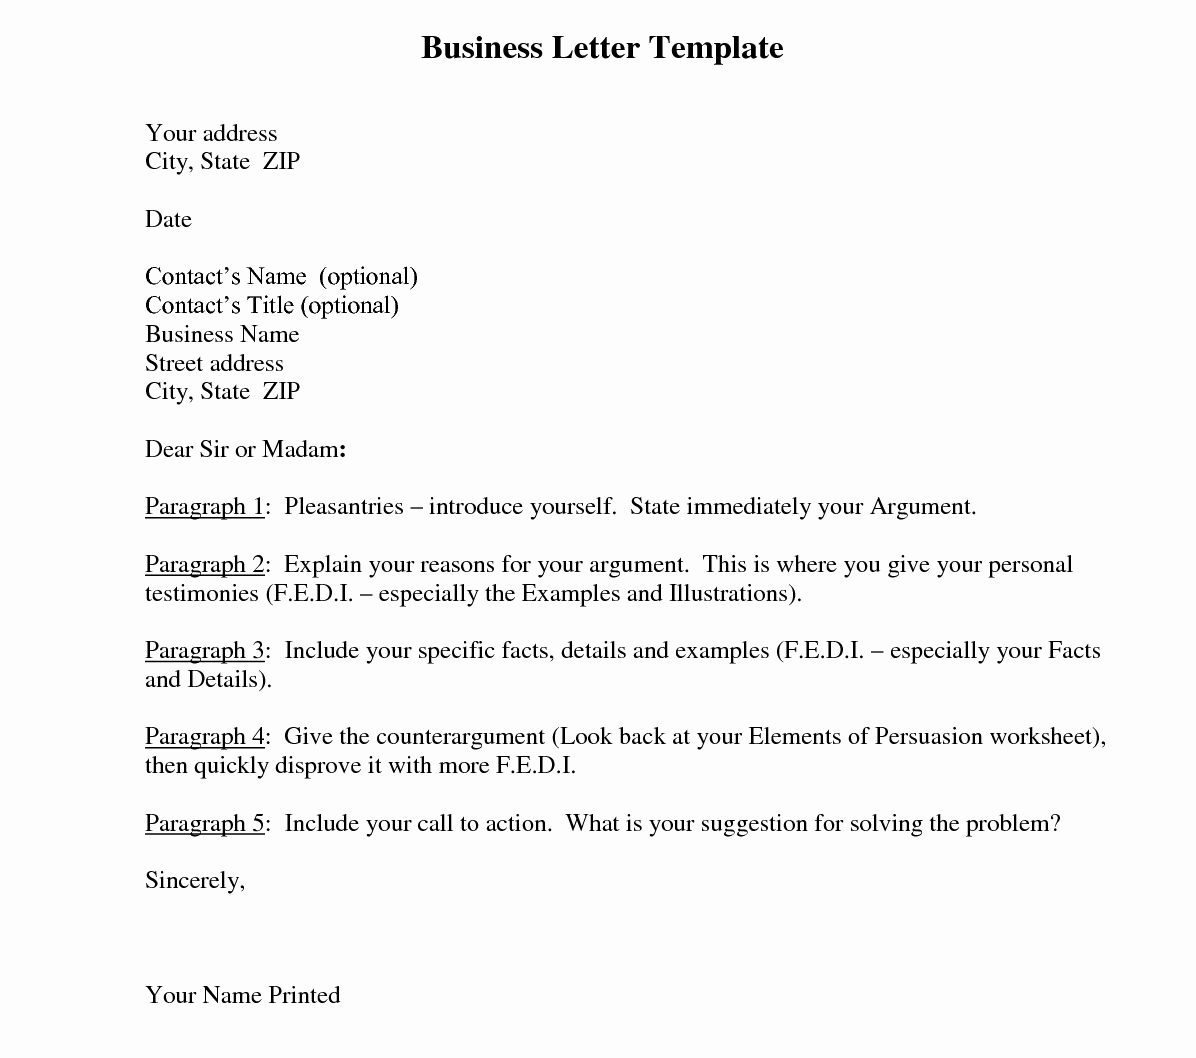 Formal Business Letter format Template Elegant Business Letter Template and their Benefits